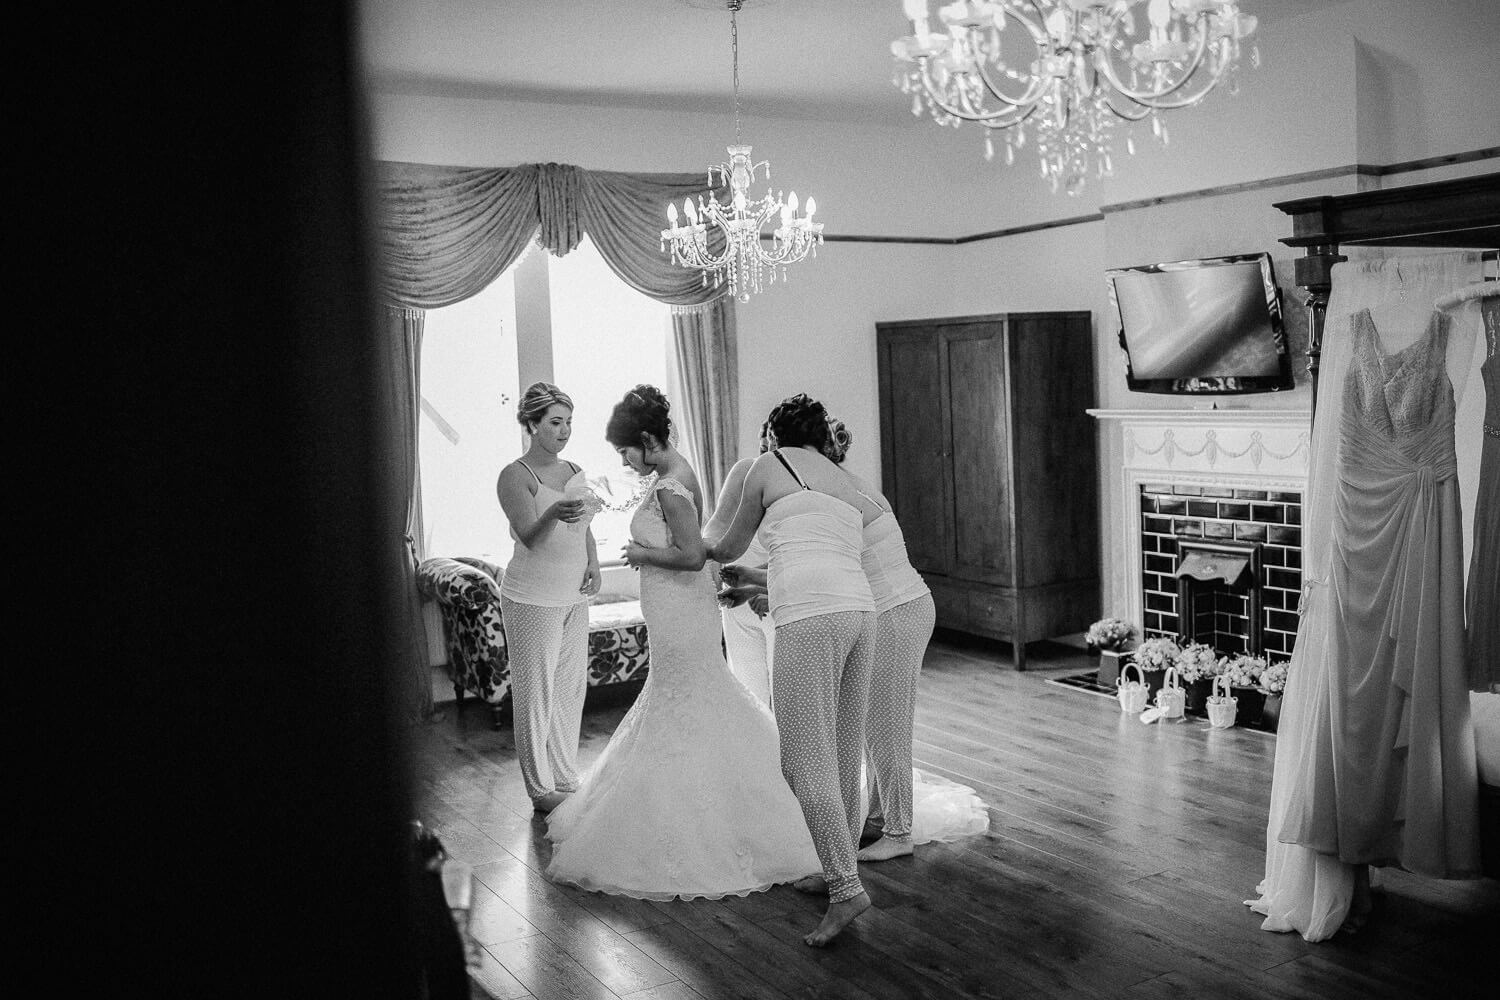 Black and white documentary photos of bridesmaids helping bride get ready